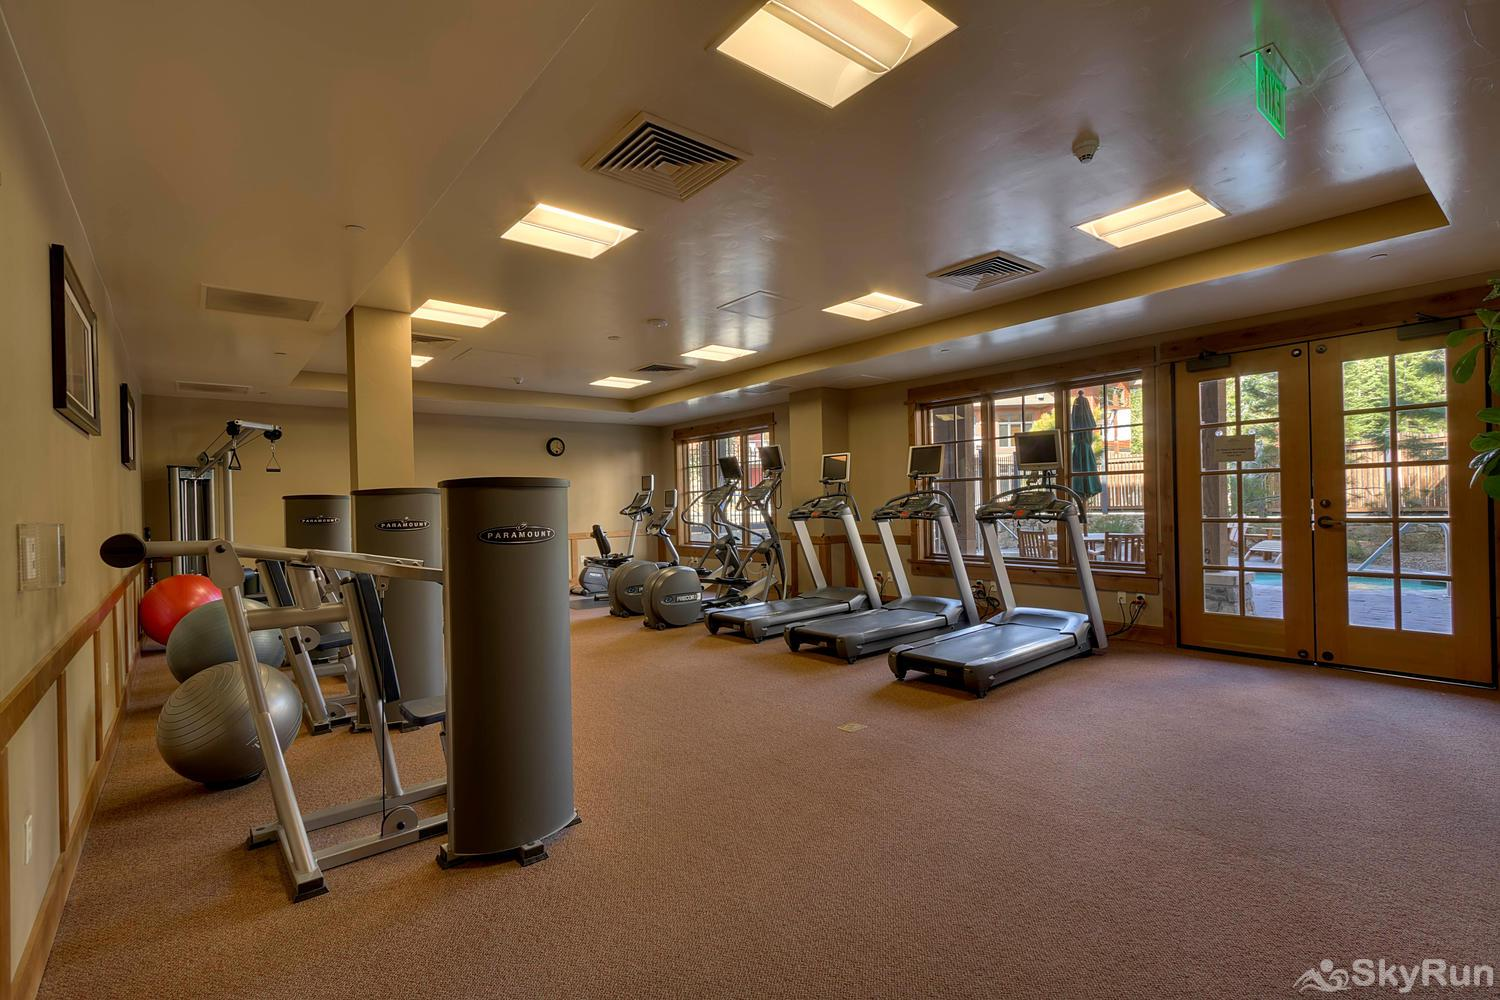 Sierra Range Northstar Lodge Luxury Condo Fitness Center